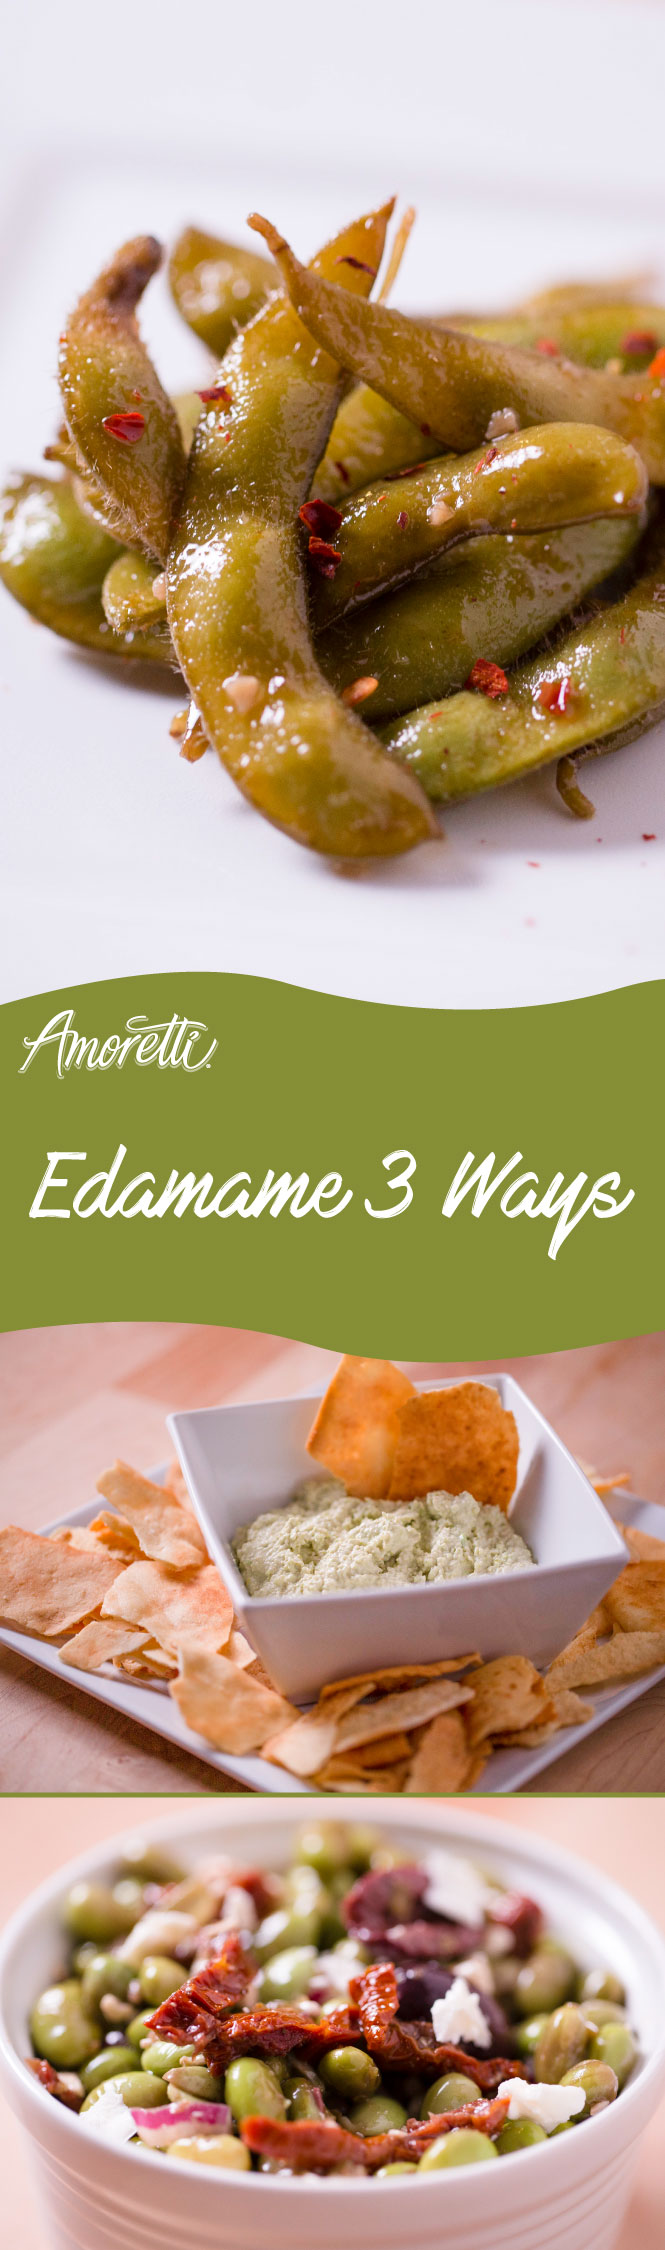 Edamame makes a great appetizer and snack!